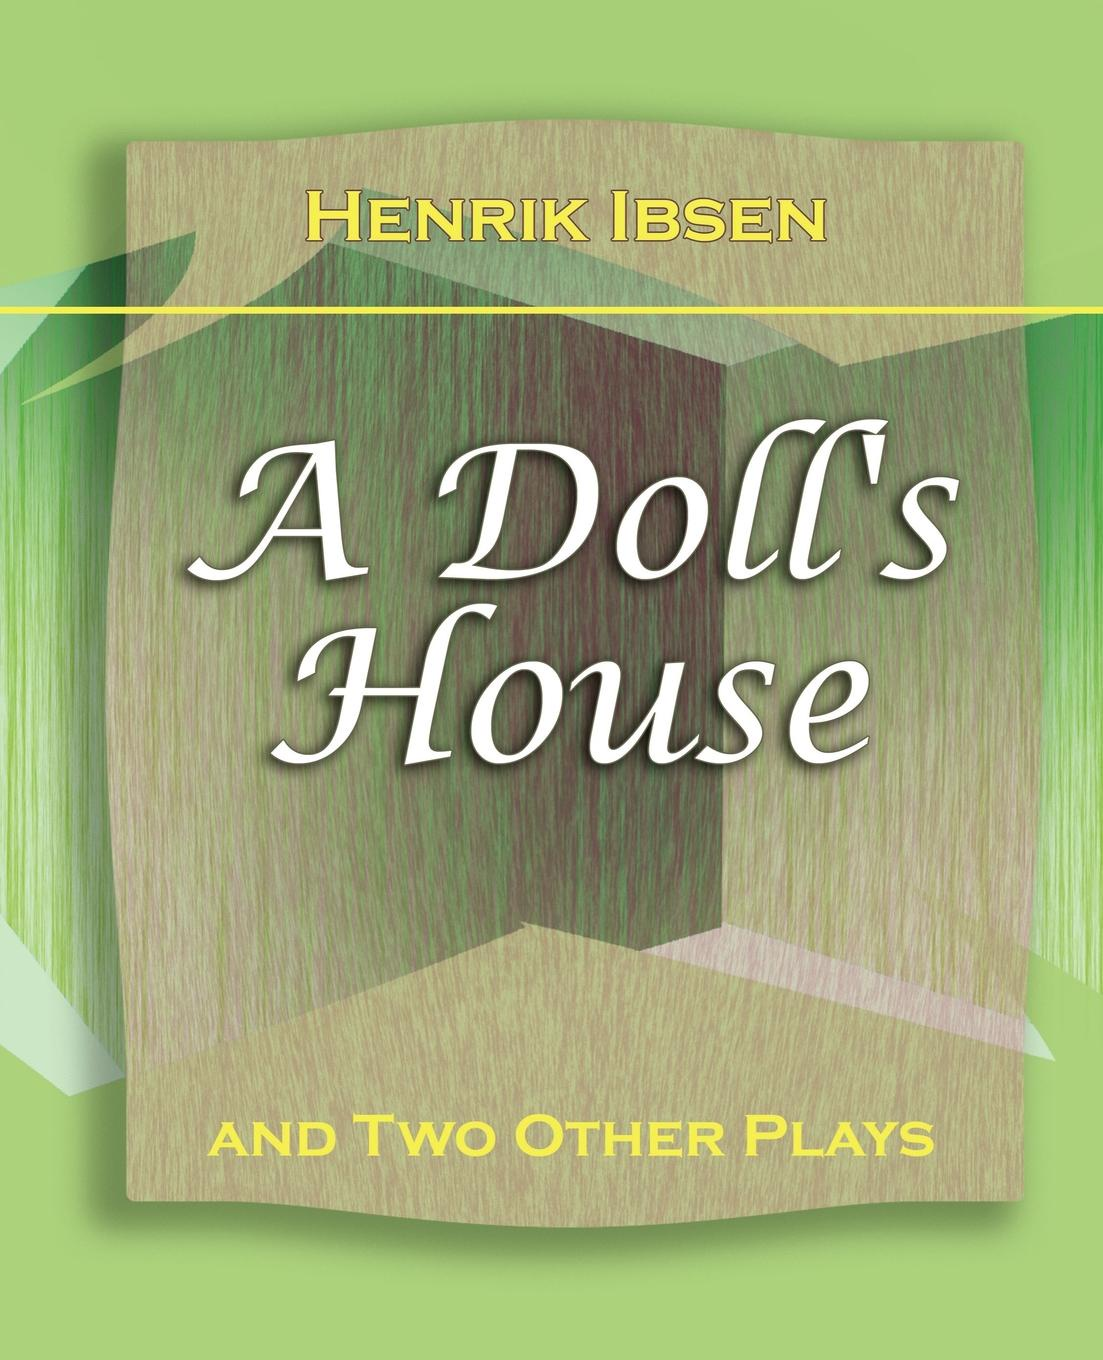 Henrik Johan Ibsen A Doll's House. And Two Other Plays by Henrik Ibsen (1910)